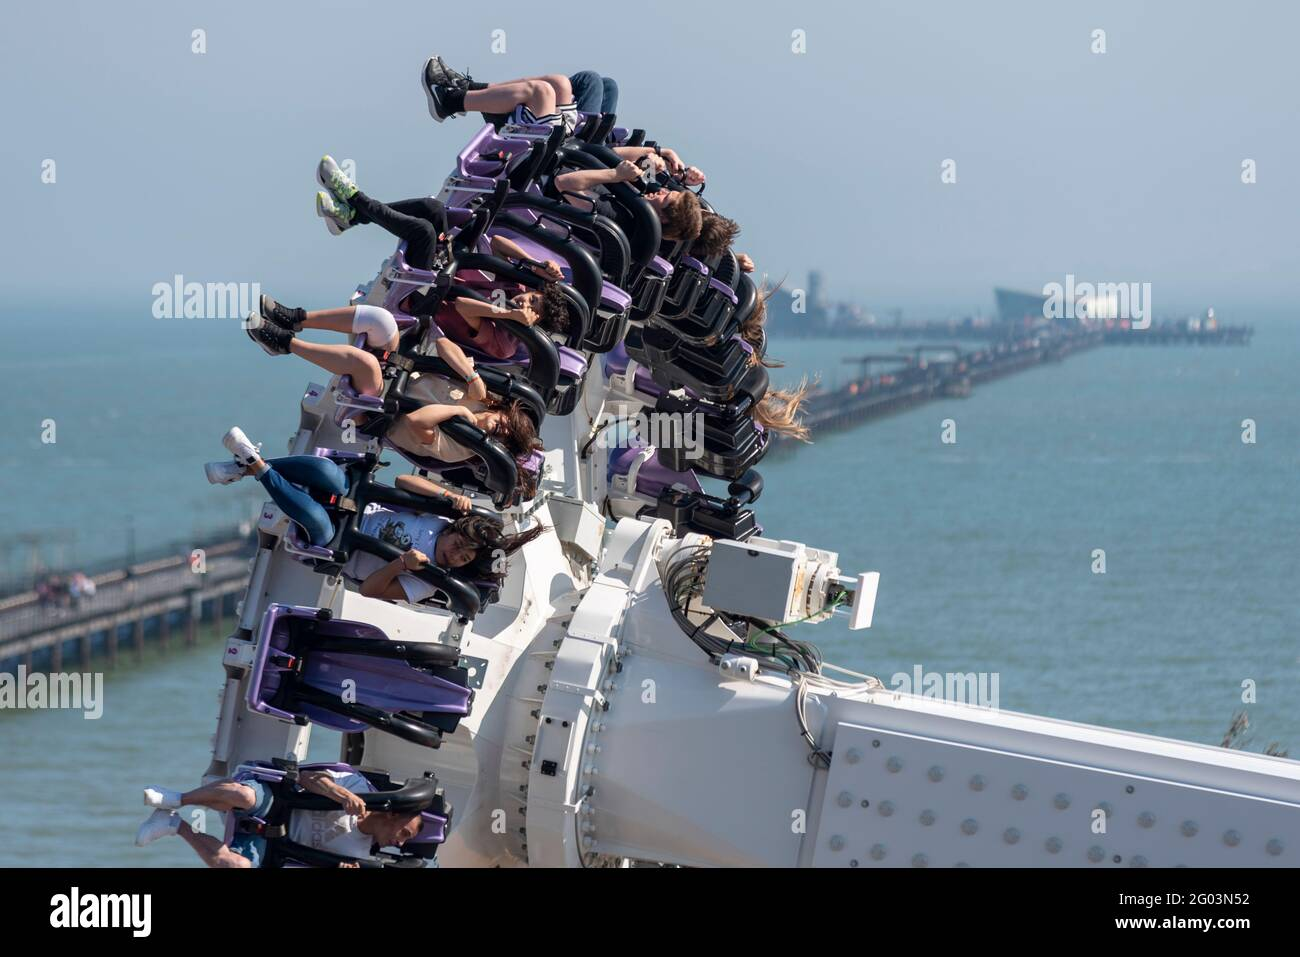 southend-on-sea-essex-uk-31st-may-2021-the-warm-sunny-weather-has-attracted-people-to-the-seaside-town-on-the-bank-holiday-monday-the-axis-thrill-ride-in-adventure-island-pleasure-park-has-been-popular-with-views-of-southend-pier-stretching-out-into-the-thames-estuary-2G03N52.jpg